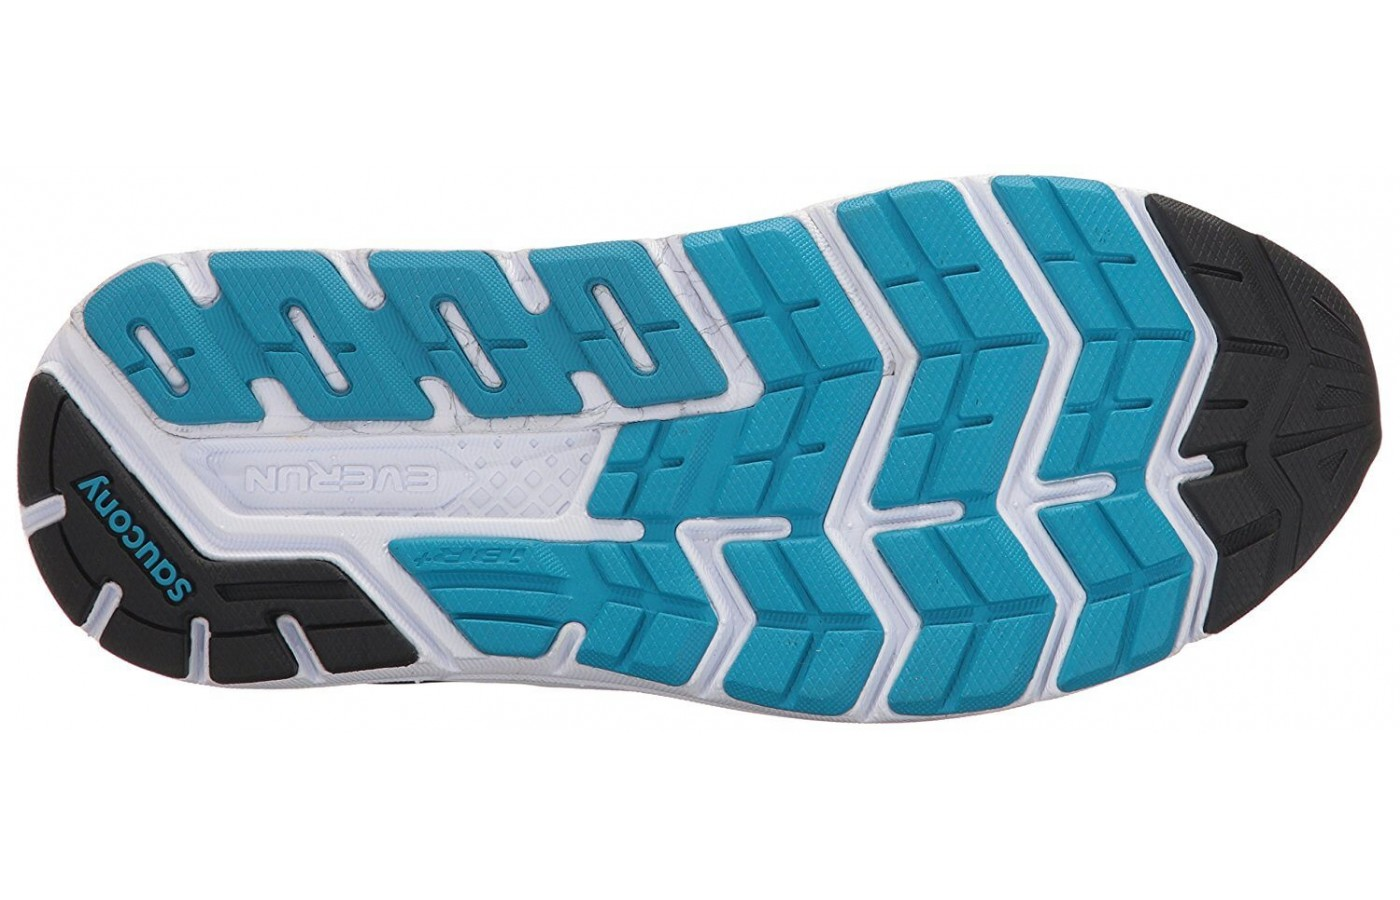 The outsole features XT-900 rubber and IBR+ material